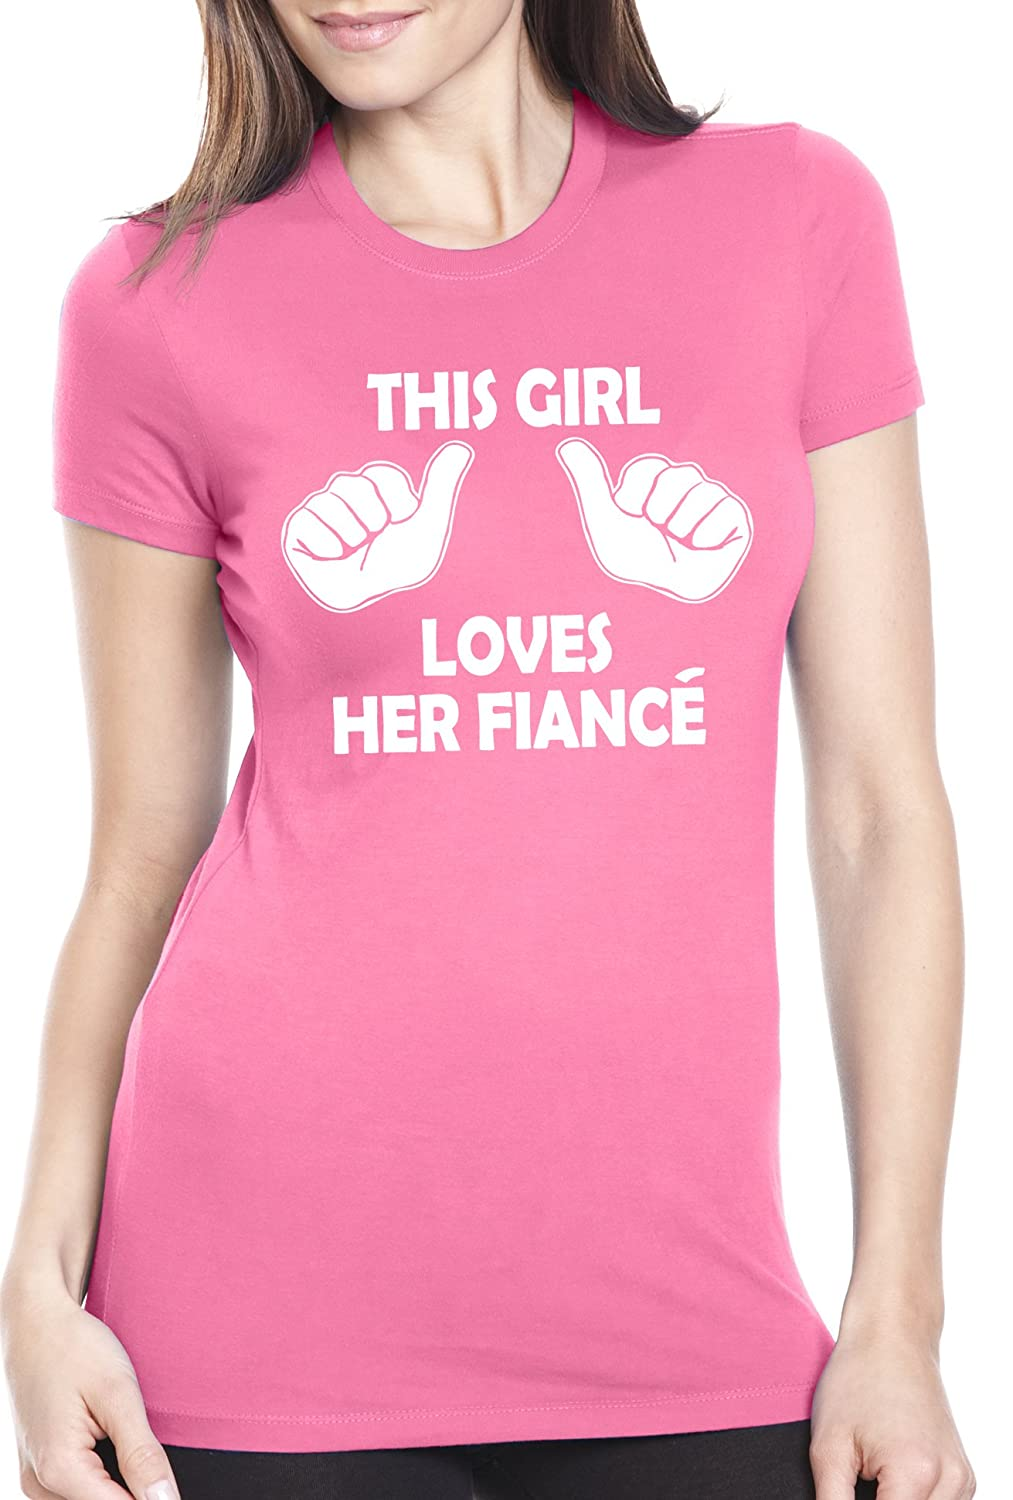 Amazon.com: This Girl Loves Her Fiance T-Shirt Funny Women's ...